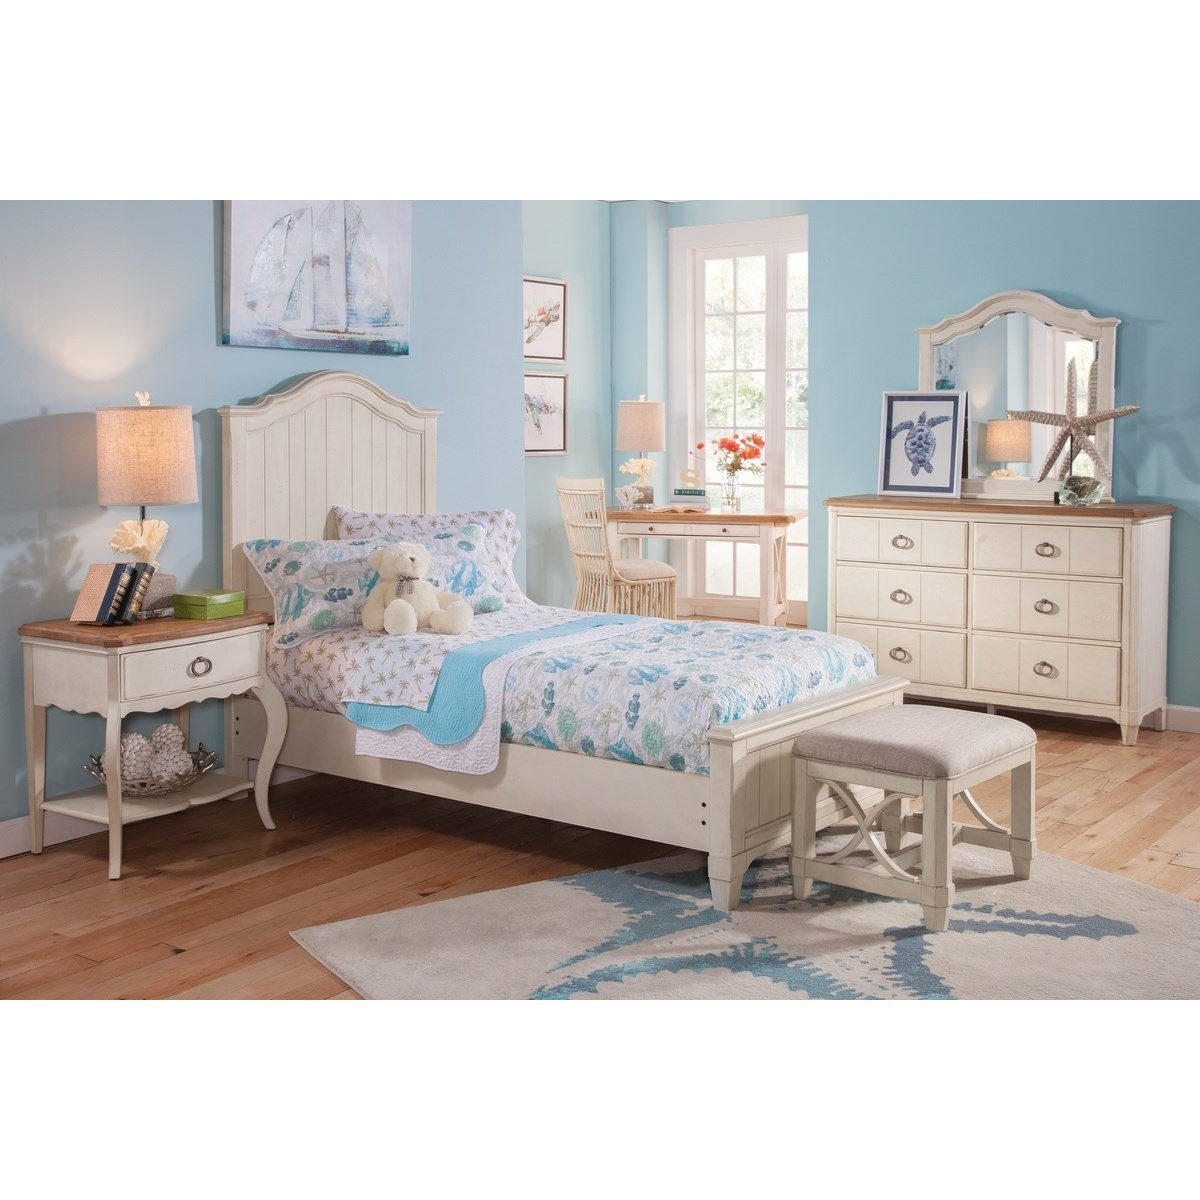 Panama Jack by Palmetto Home Millbrook Twin Bedroom Group - Item Number: 112 T Bedroom Group 2